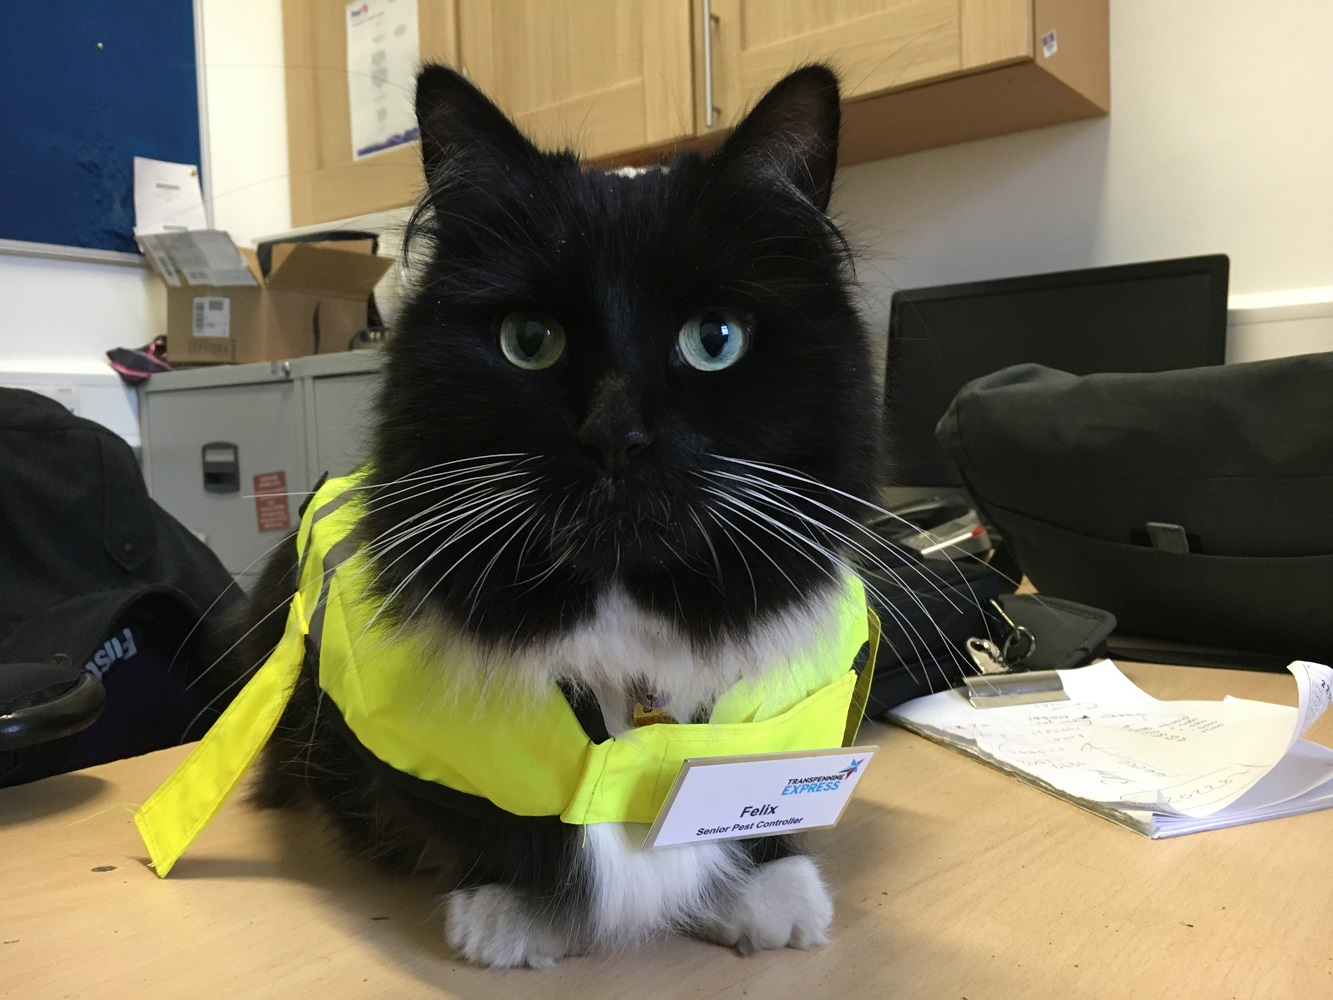 Felix the cat in a high-vis jacket